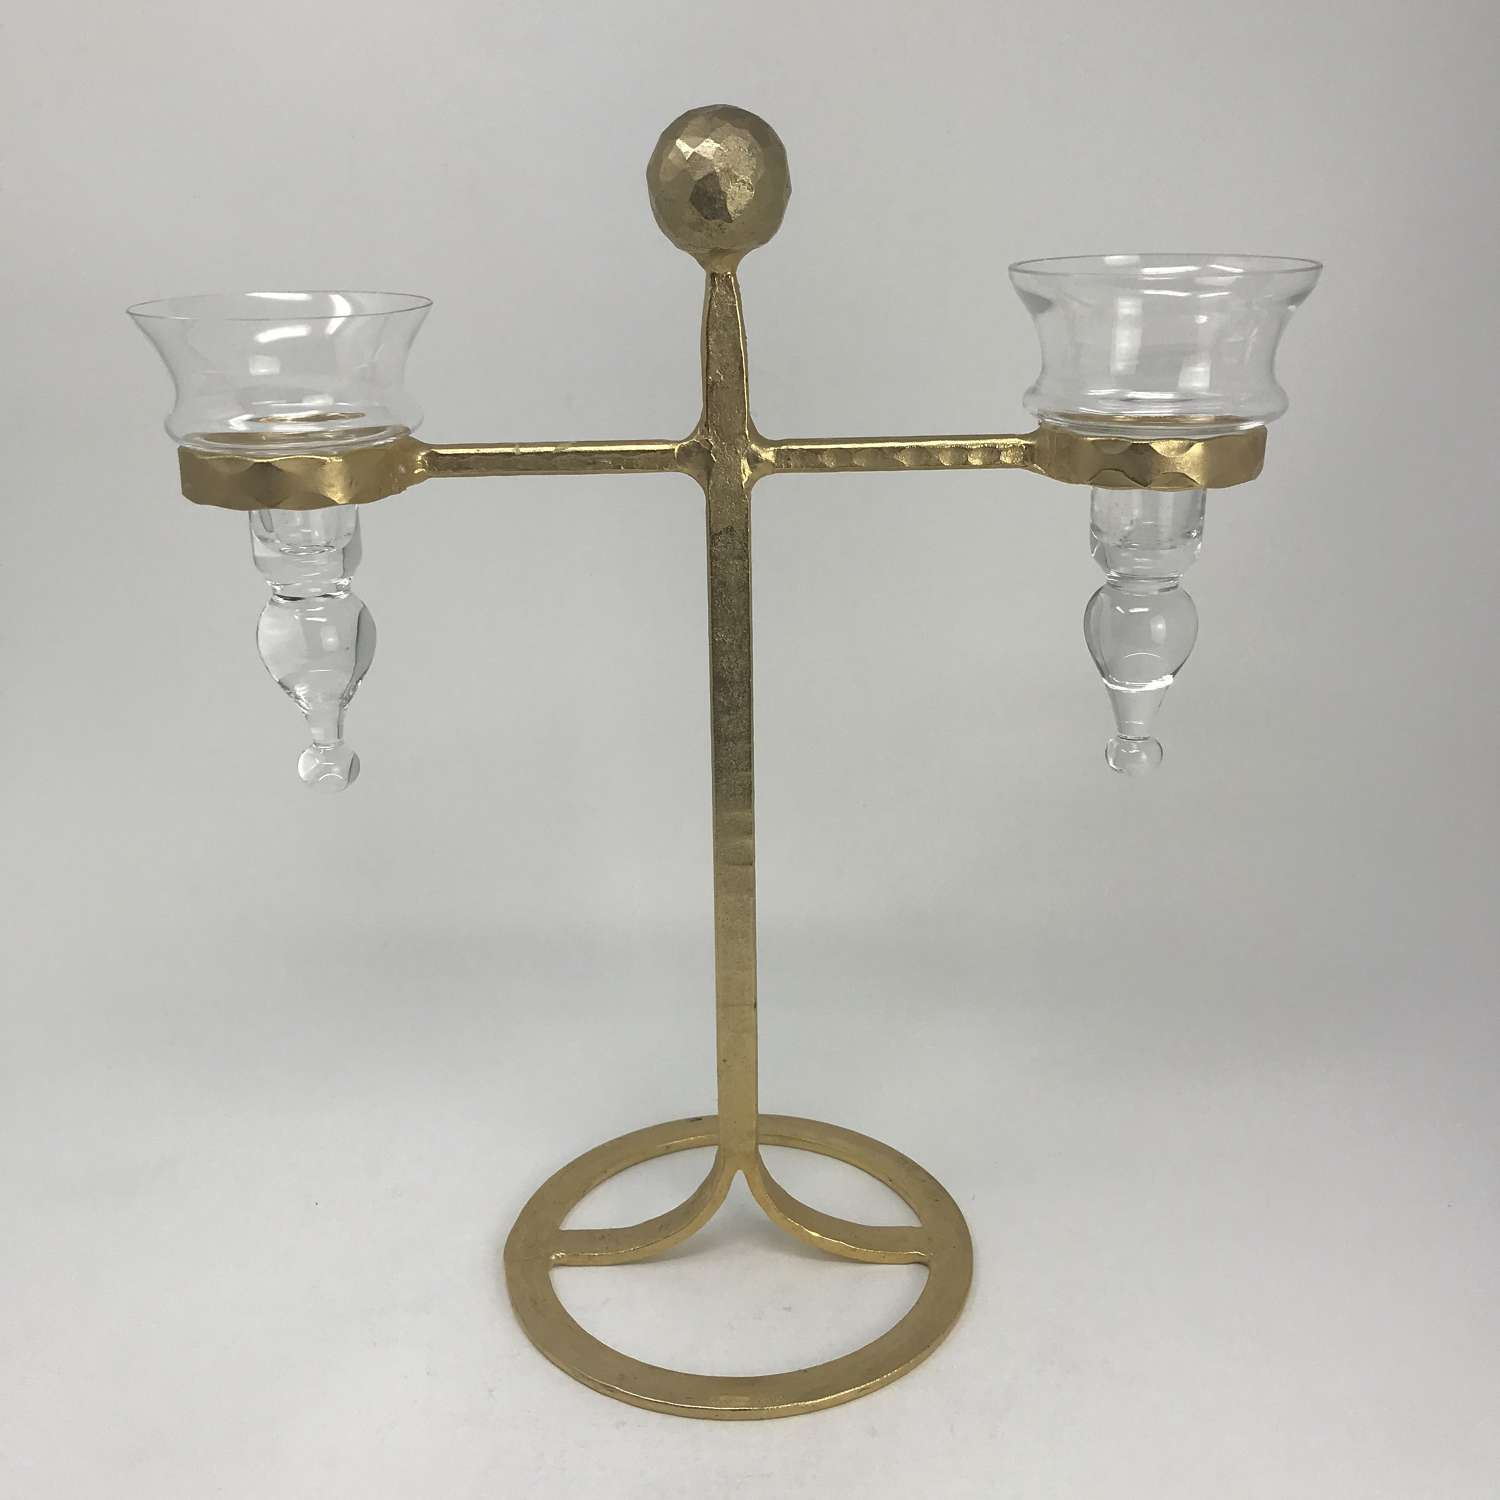 Bertil Vallien Candle holder for Boda Smide 1960s